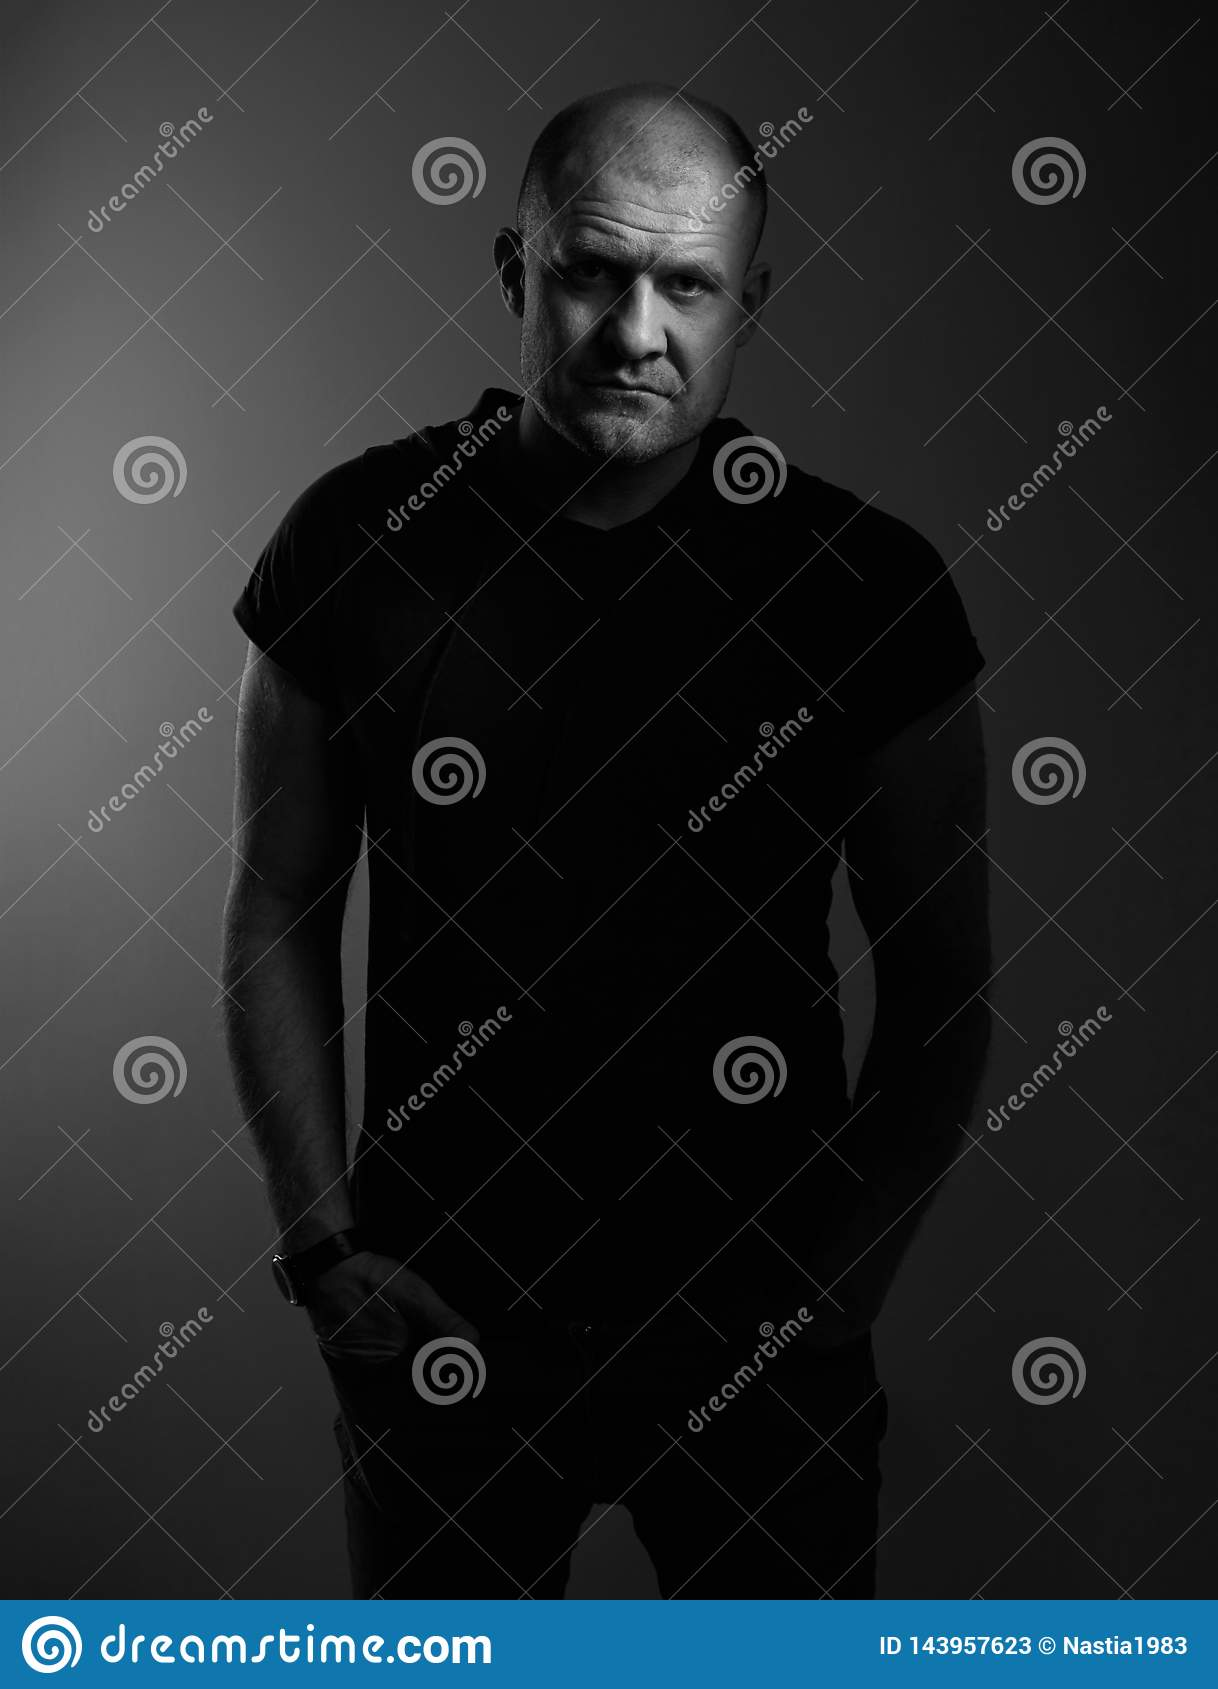 Sad angry crime man with bald head looking mystery and agressive in black shirt on dark grey background. Closeup